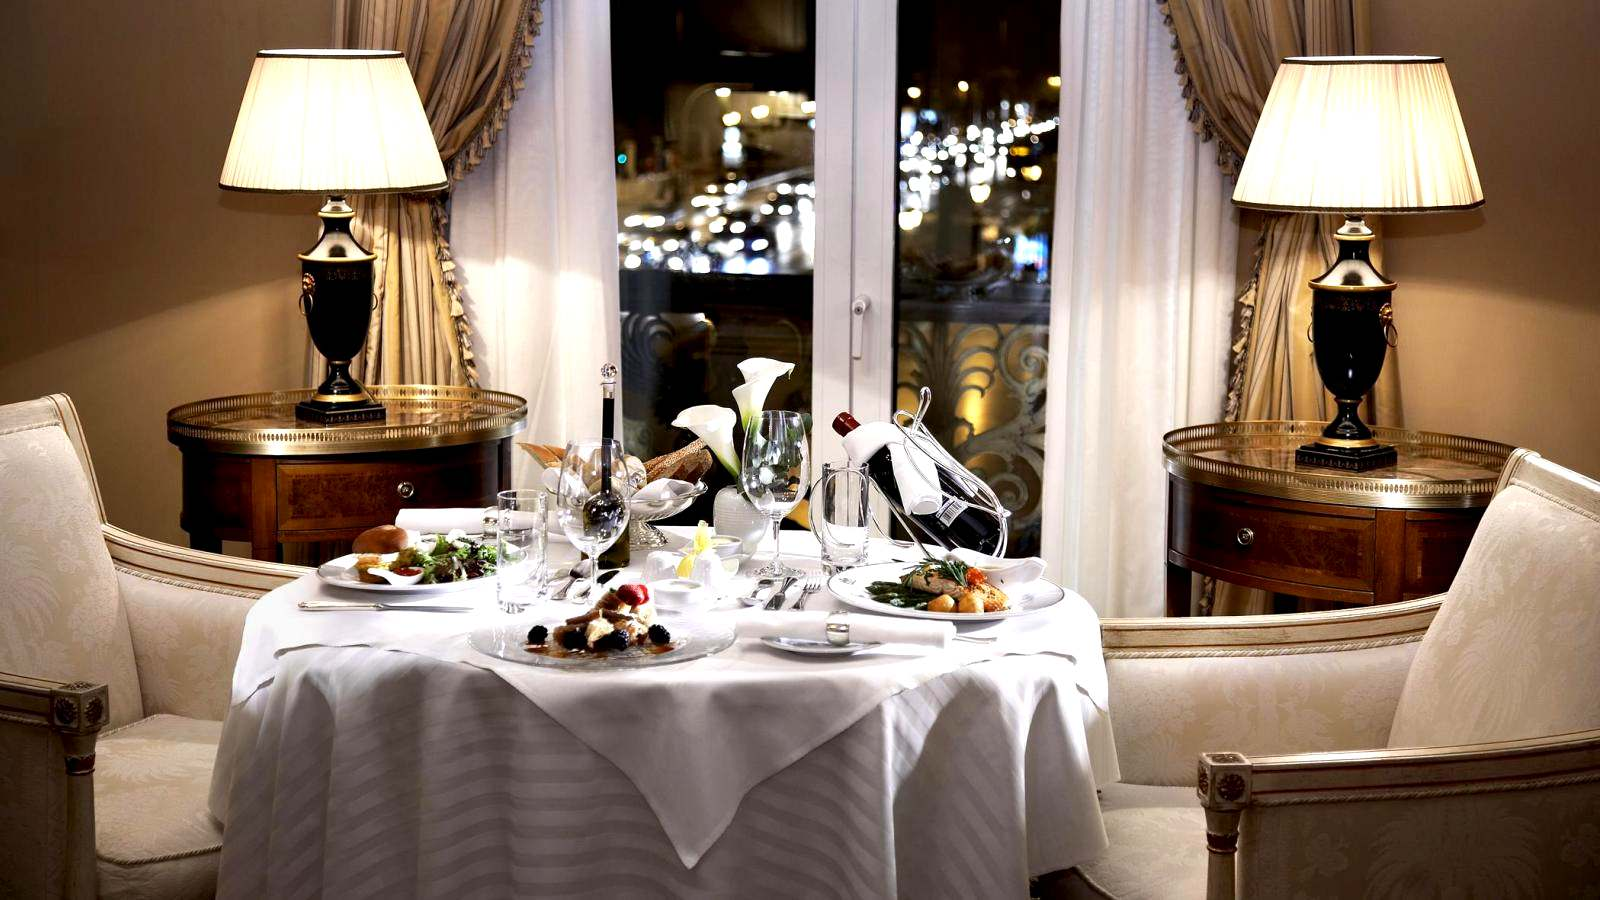 In-room dining - Enjoy the privacy of your room at the Hotel Grande Bretagne